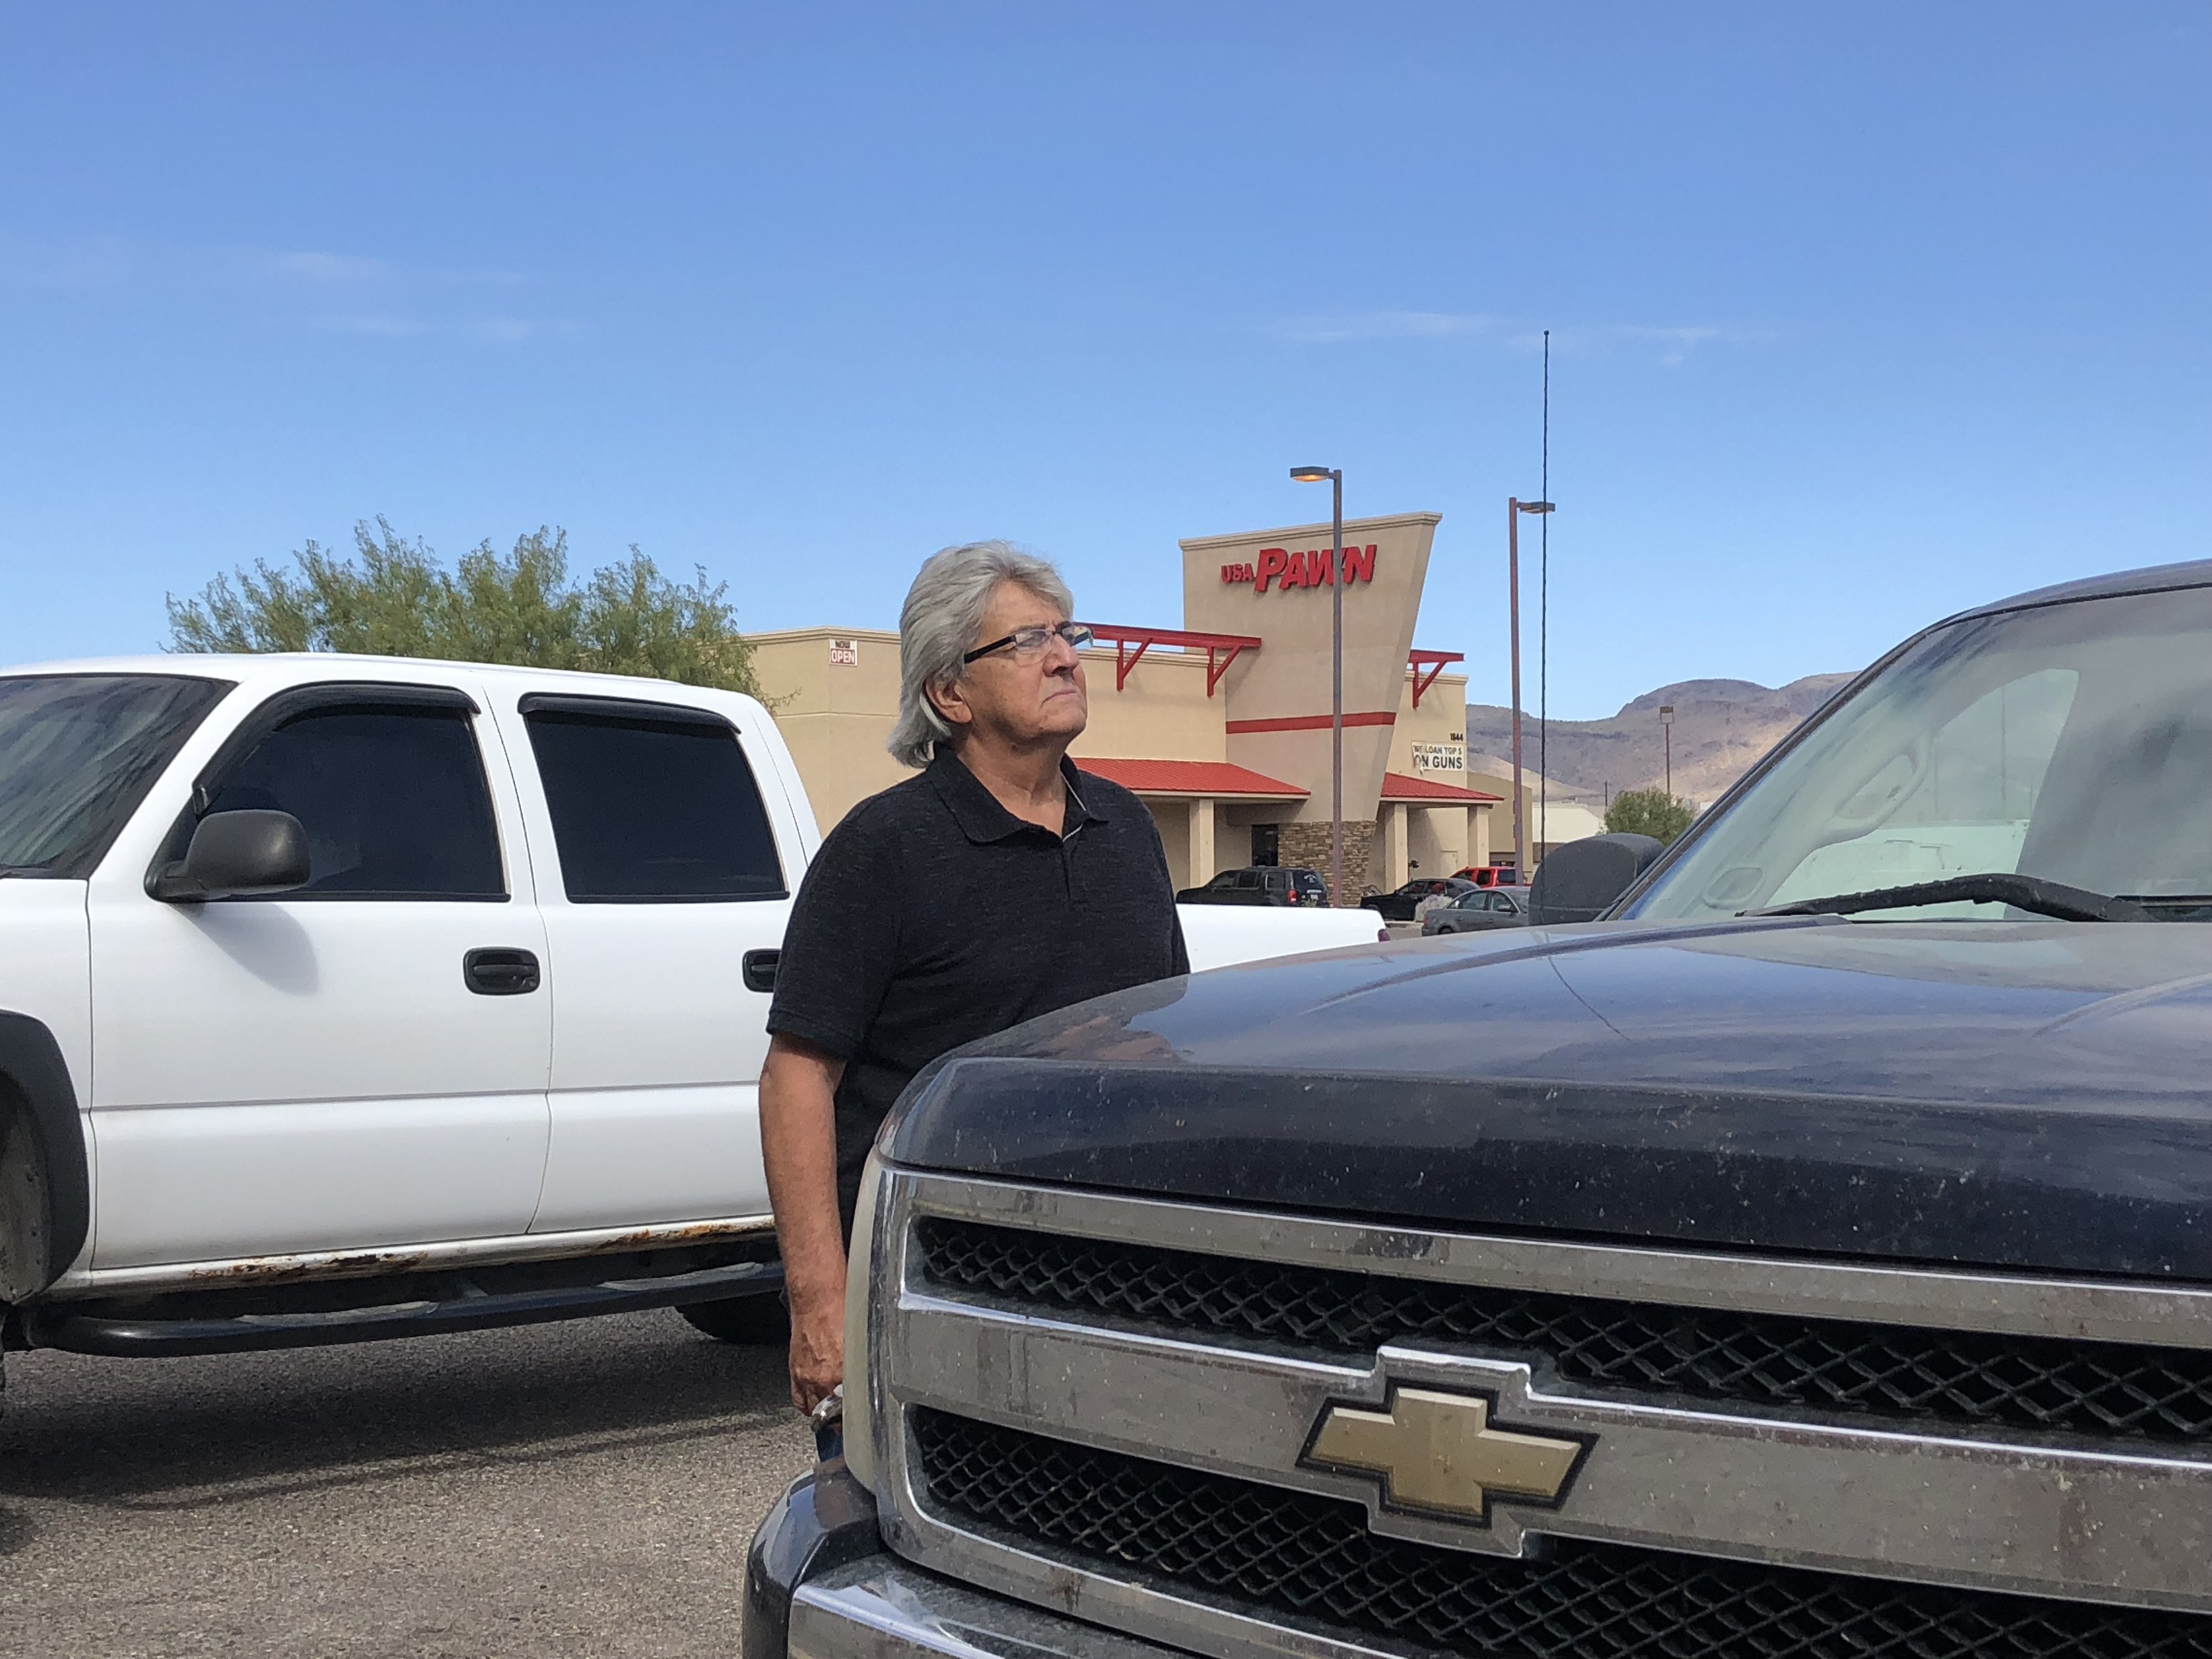 Passenger in rear-end accident files complaint against